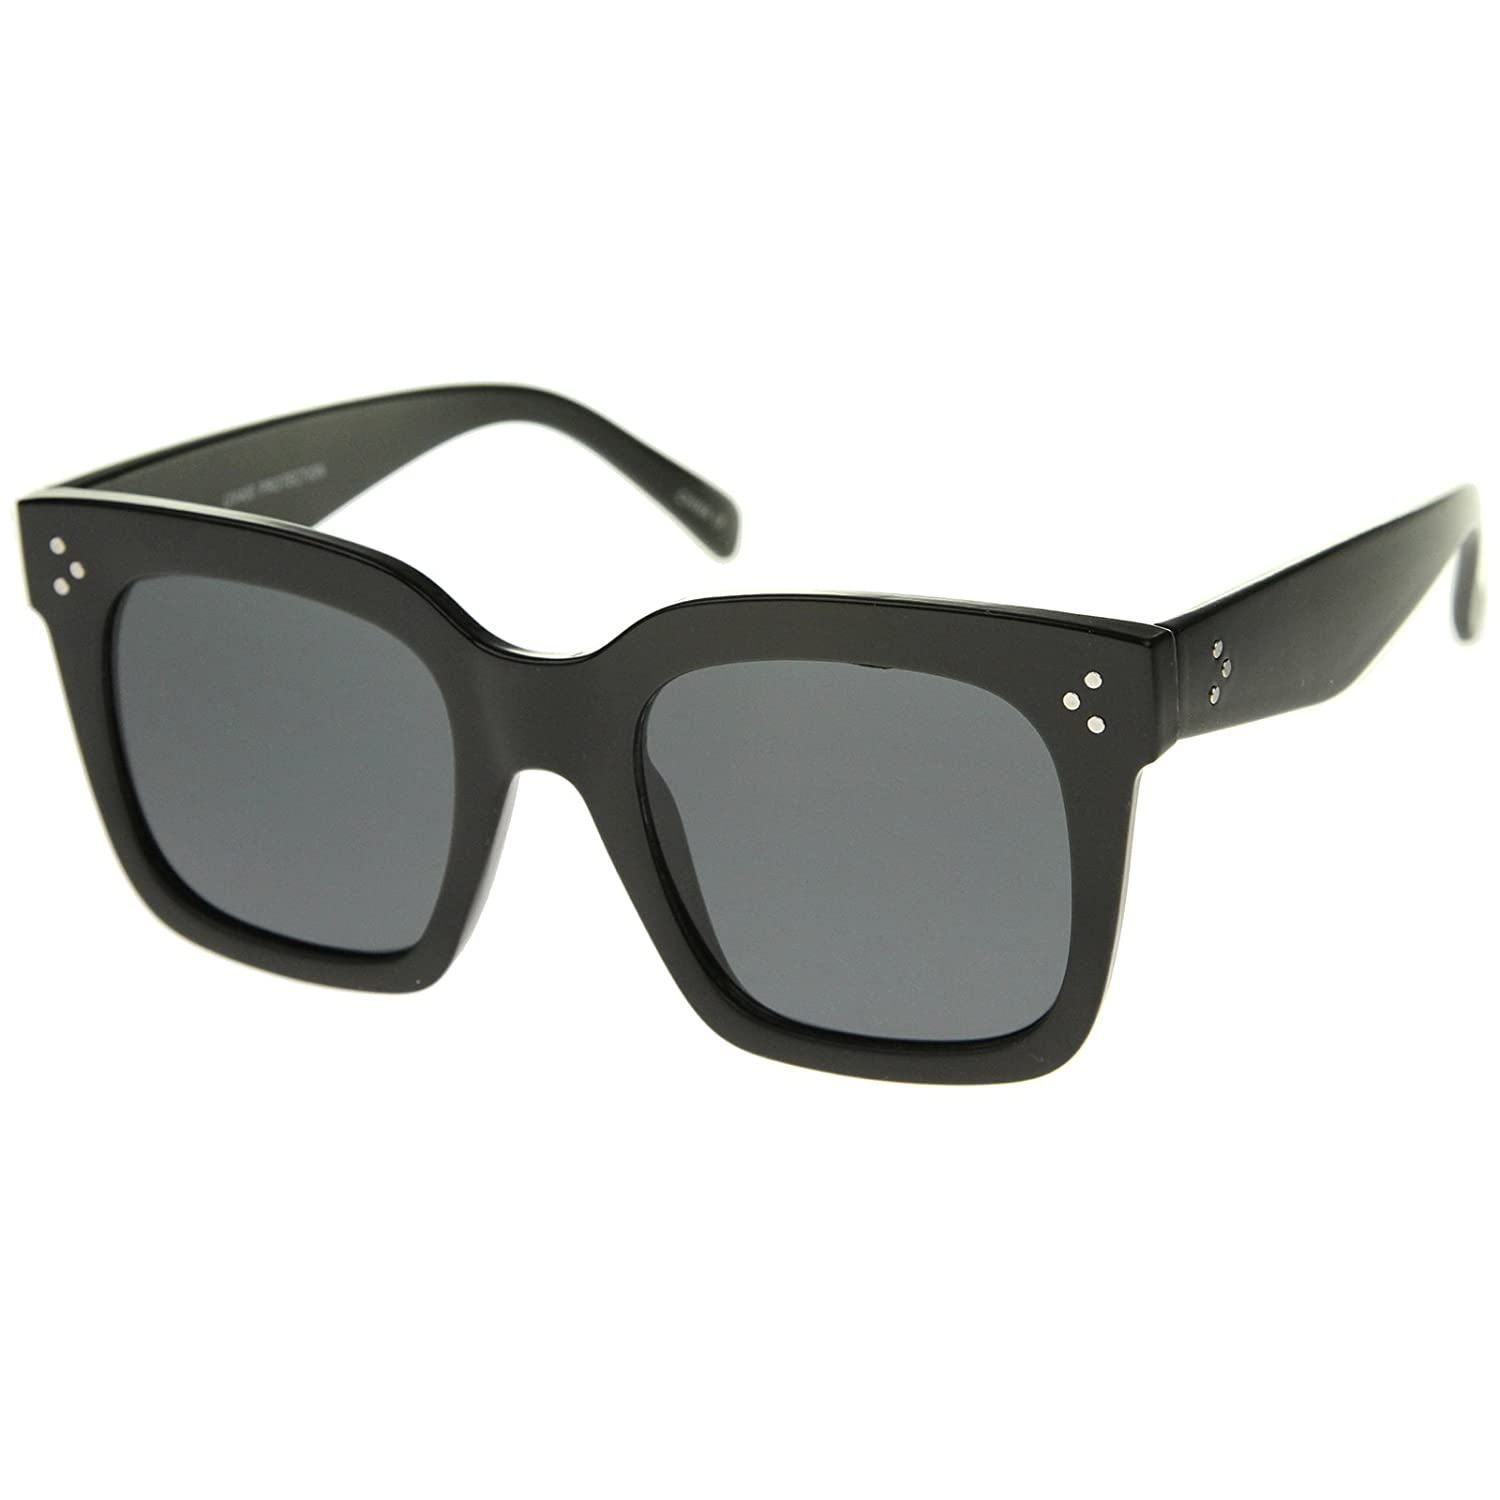 420bdb8ac25 zeroUV - Retro Oversized Square Sunglasses for Women with Flat Lens 50mm  frame optic ZV-A252 larger image